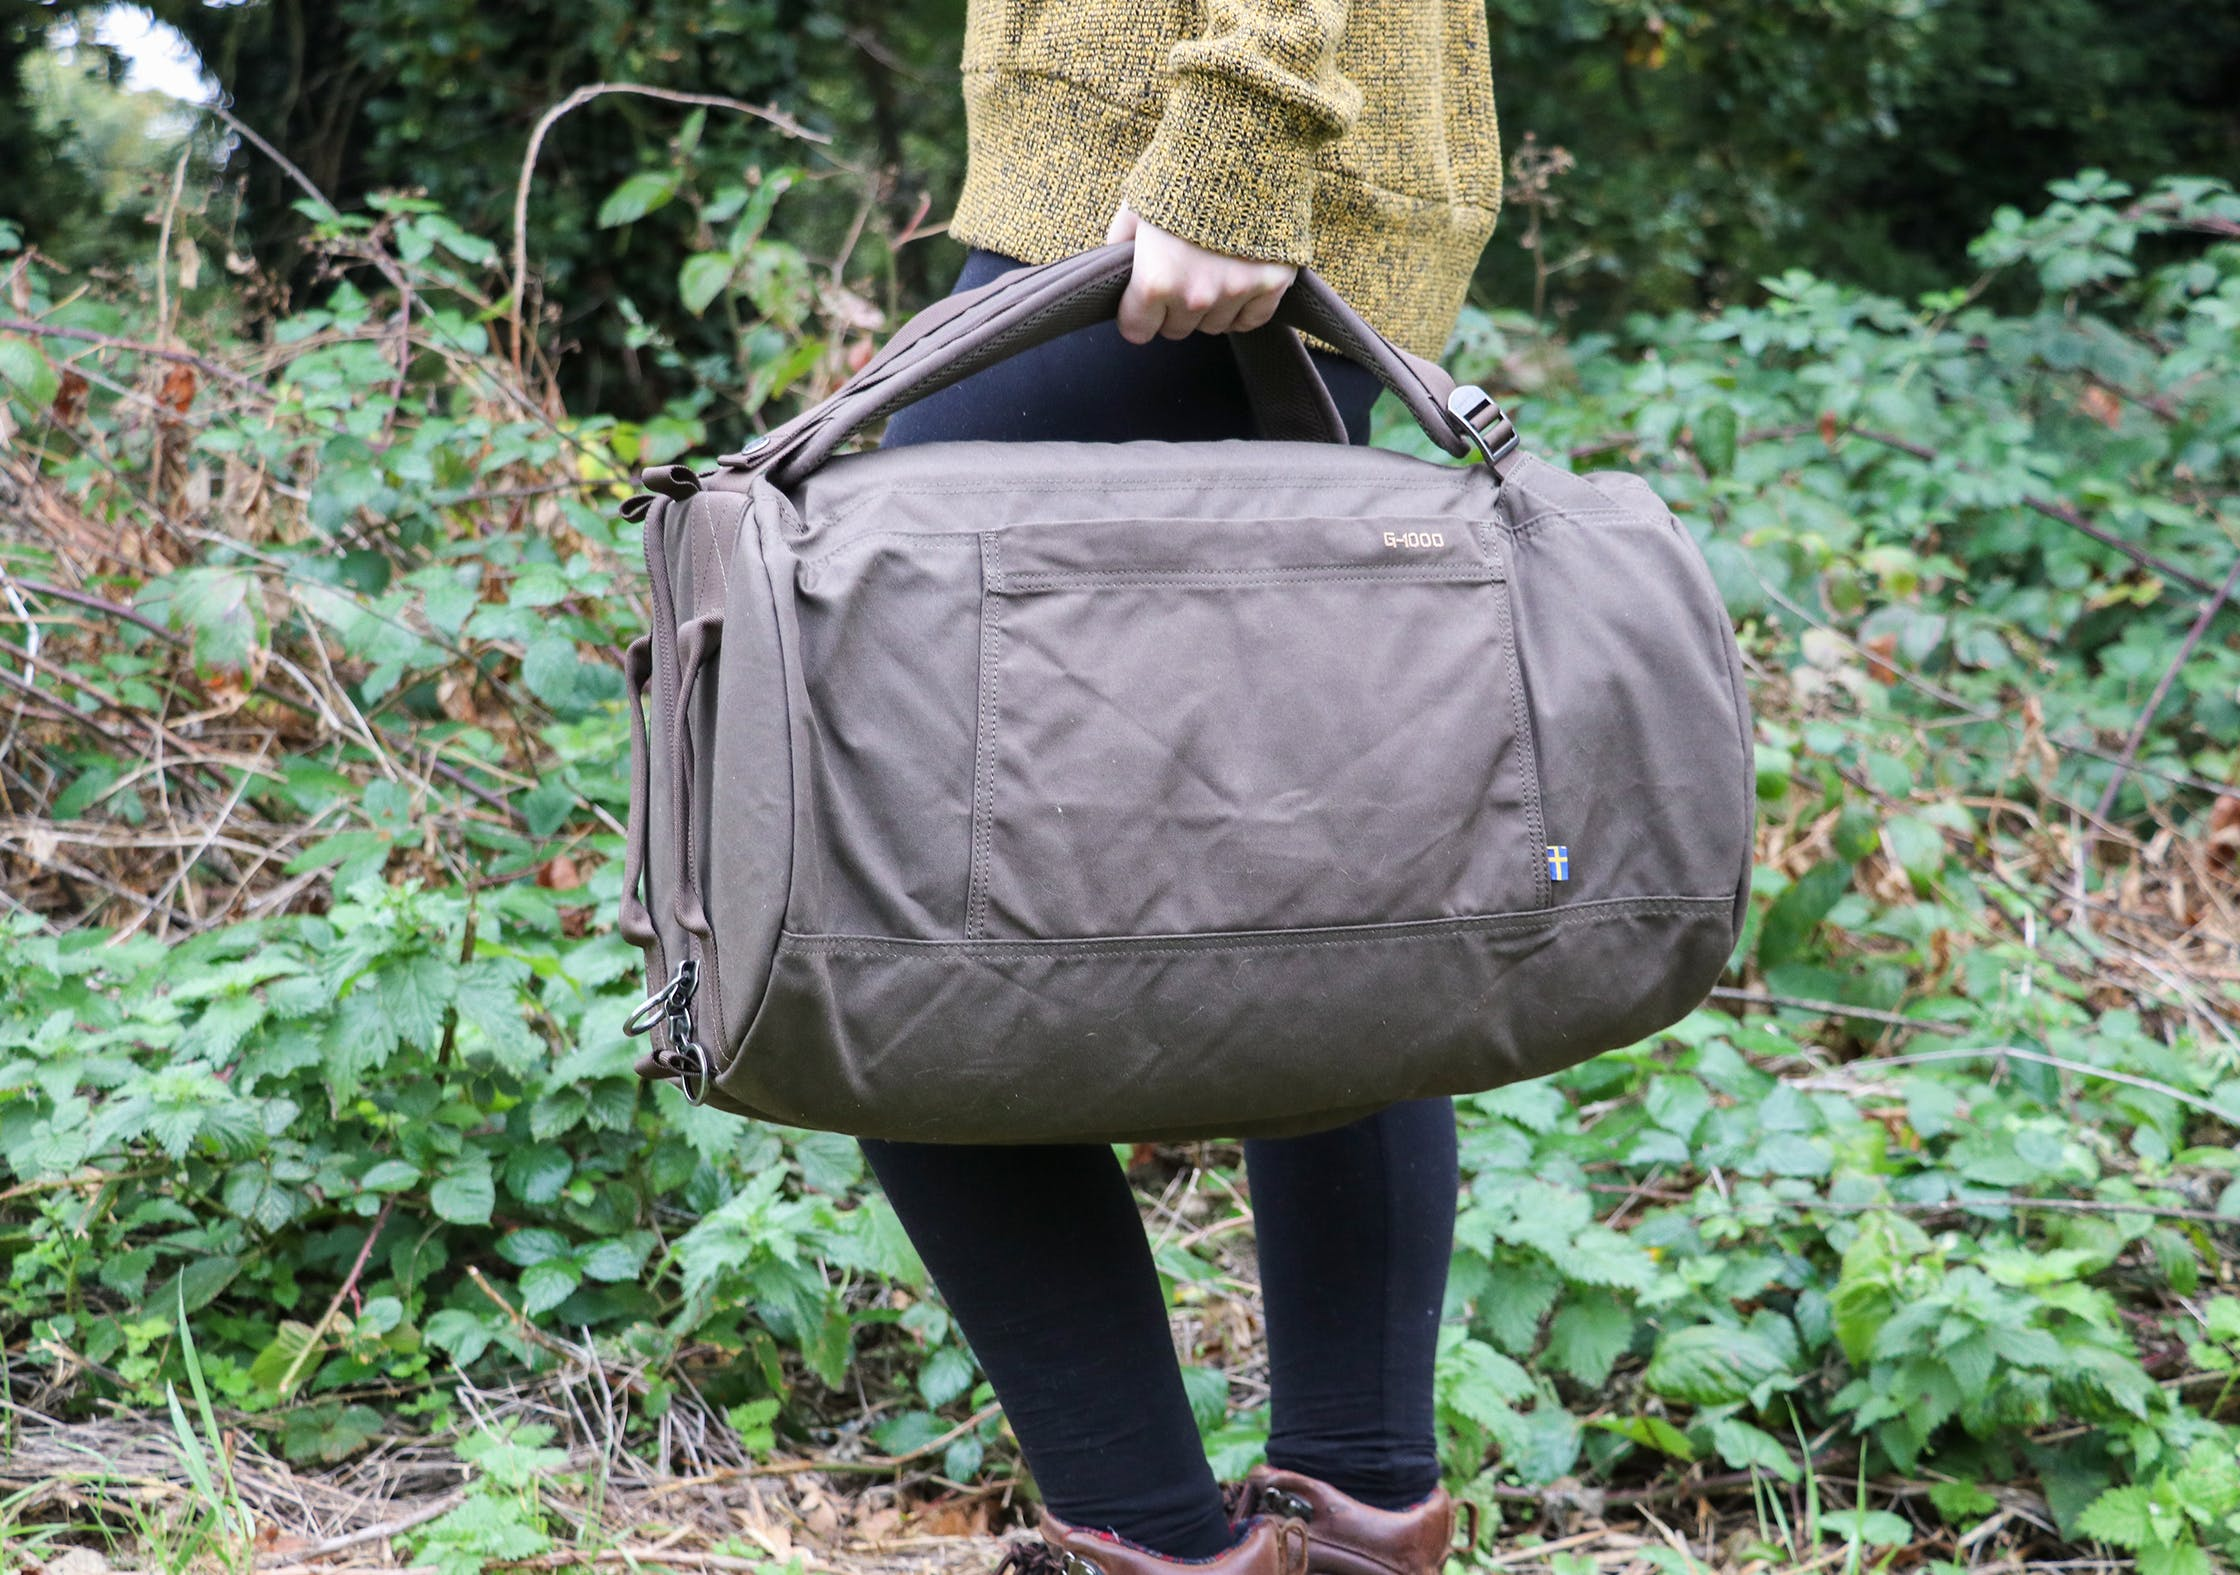 Carrying The Fjallraven Splitpack As A Duffel